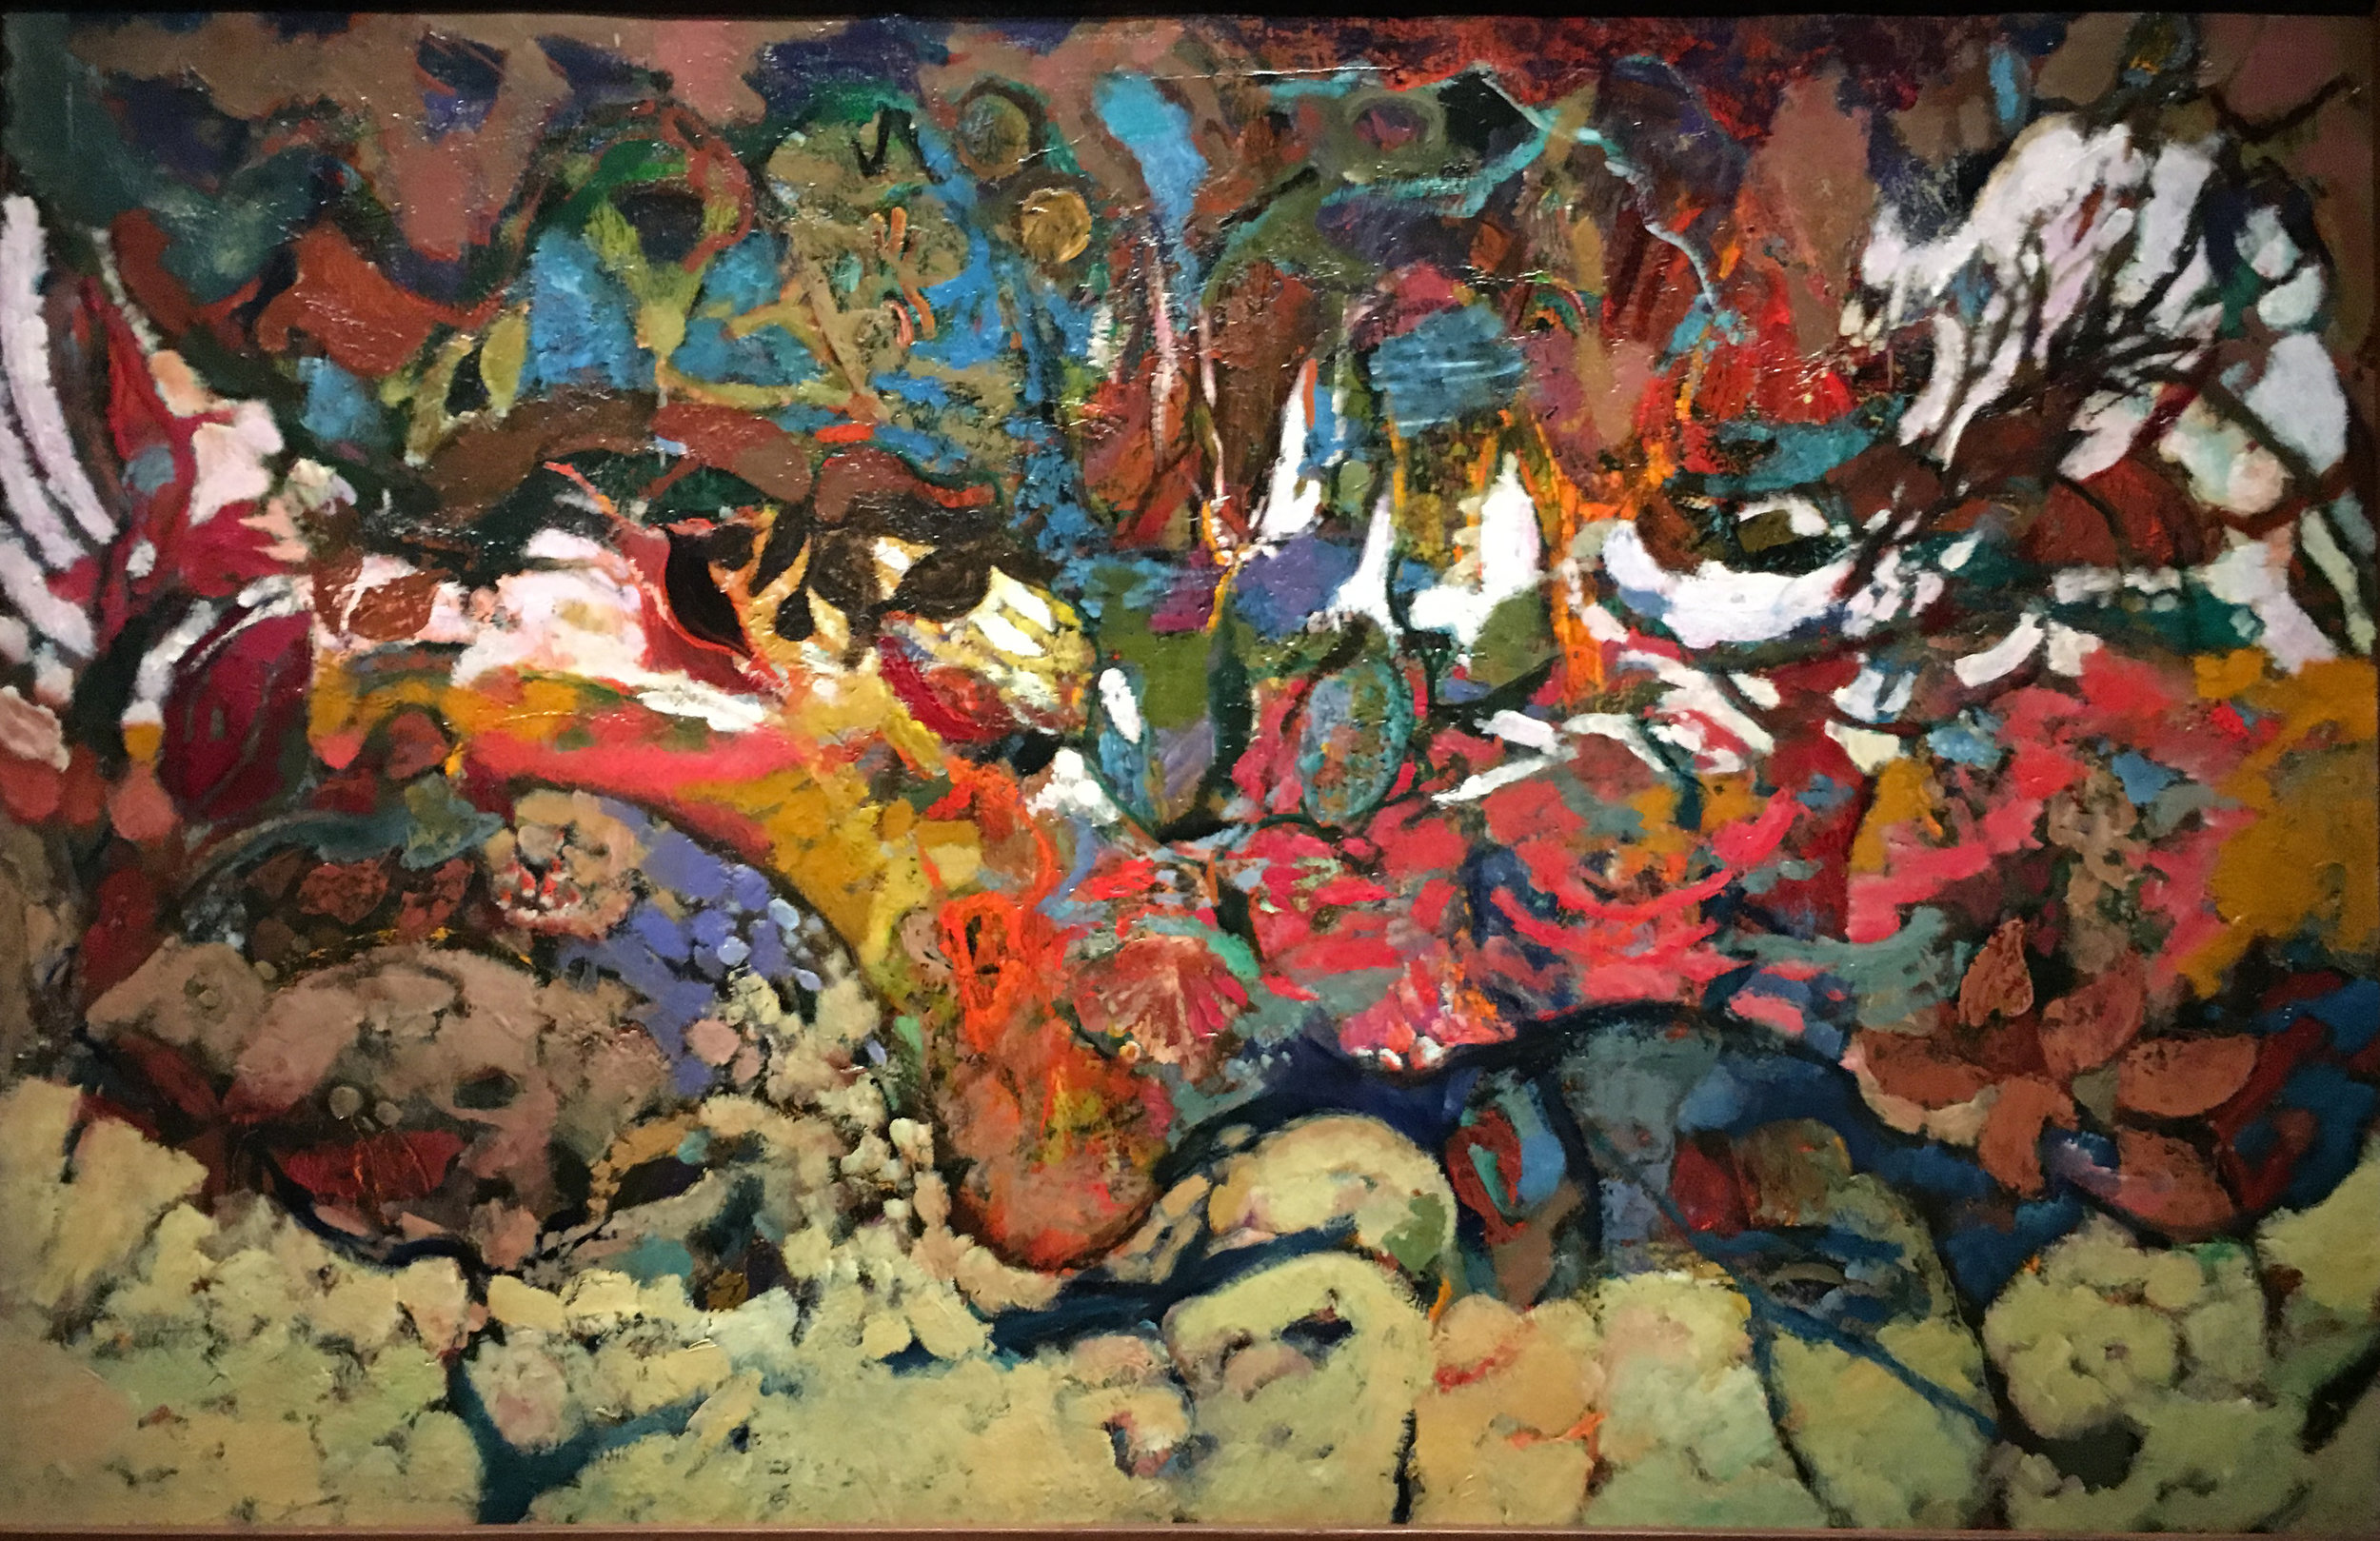 Rocks and Autumn Leaves, 1949-51, oil on canvas, Hyman Bloom (Photograph J.Cook)